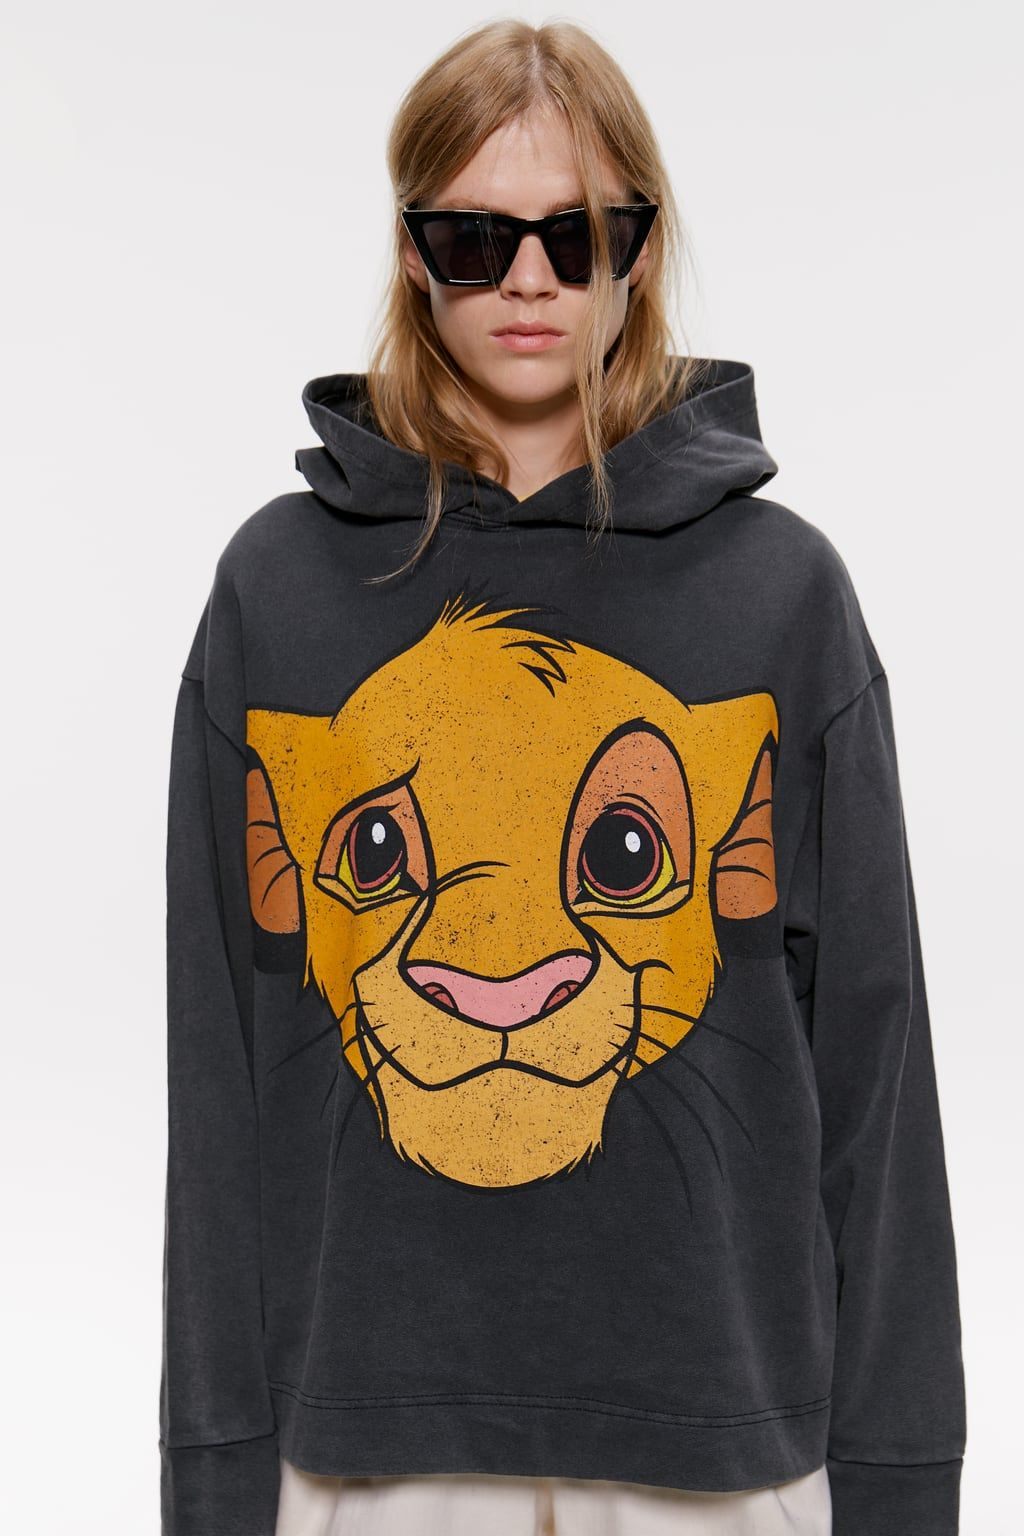 The Lion King C Disney Hoodie New In Woman Zara Australia In 2020 Lion King Clothes Sweatshirts Disney Hoodies